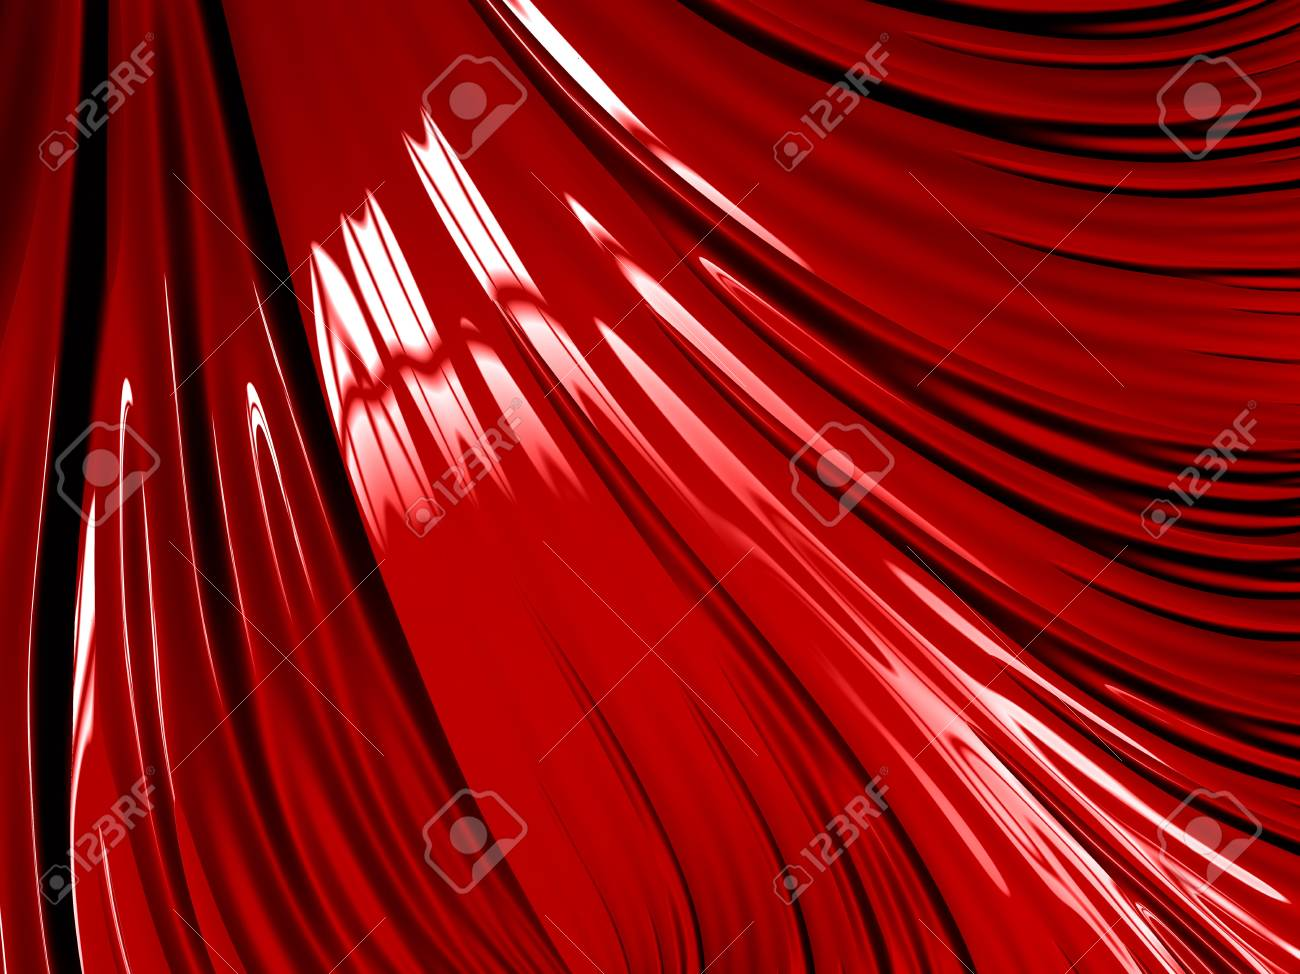 Digitally Created Fractal In Liquid Effect Deep Metallic Red Ideal For Wallpaper Background Stock Photo